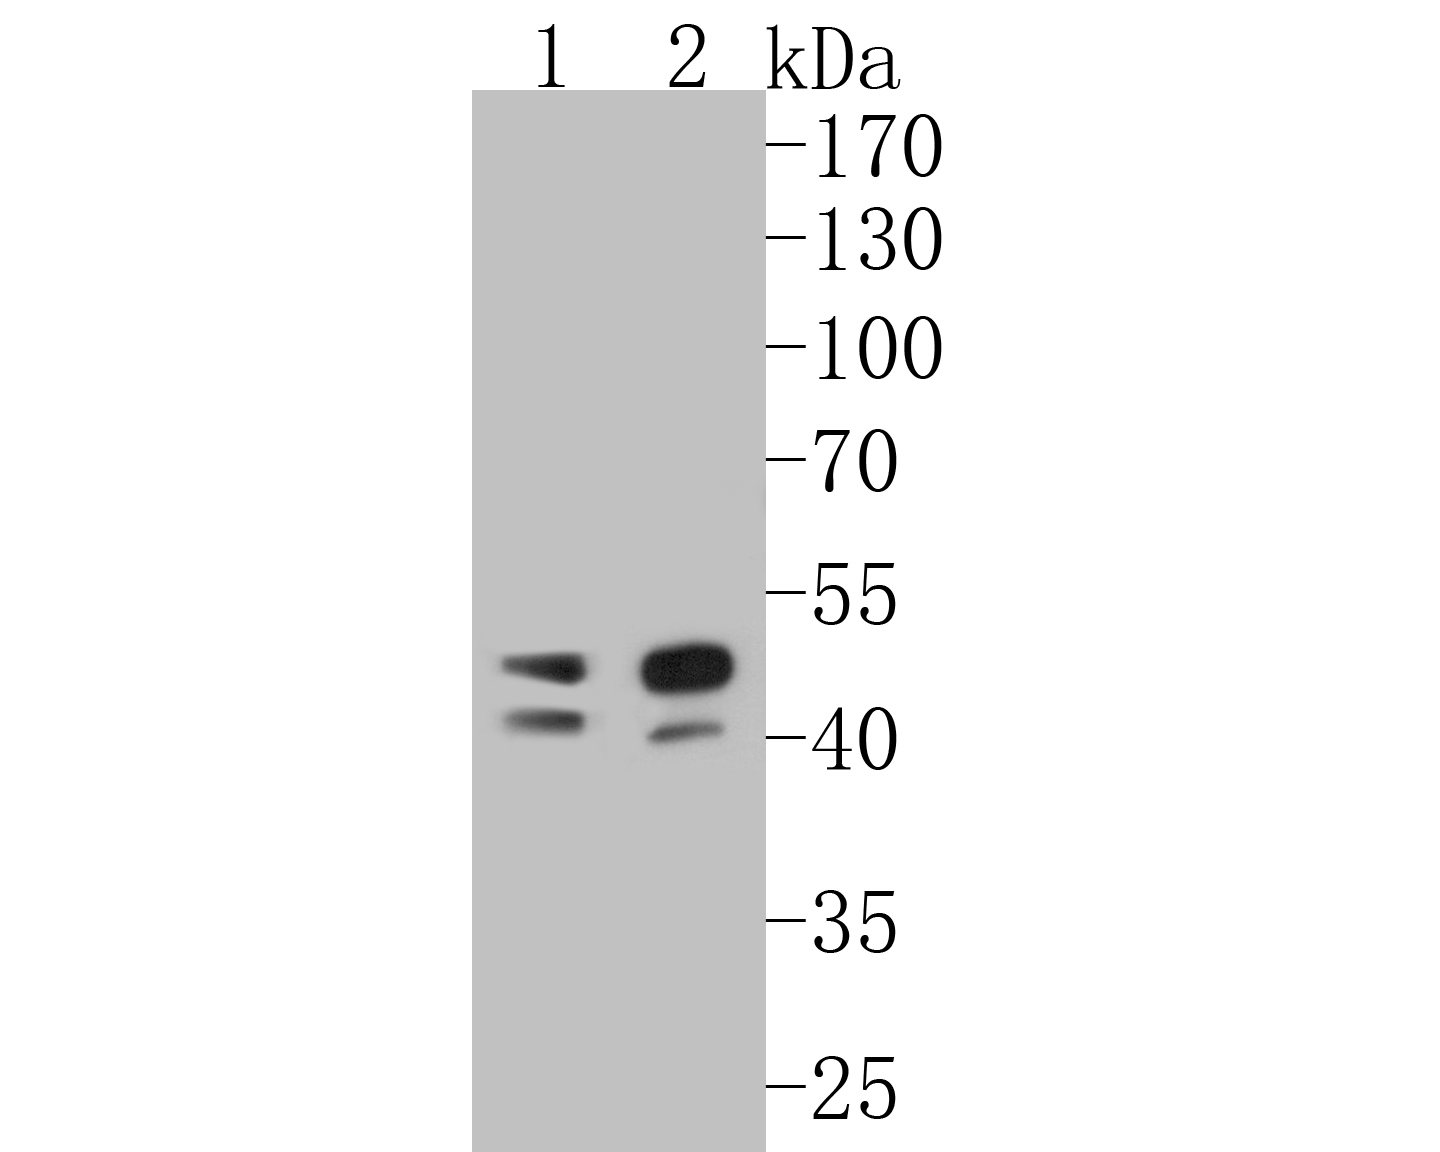 Western blot analysis of TMX4 on different lysates. Proteins were transferred to a PVDF membrane and blocked with 5% BSA in PBS for 1 hour at room temperature. The primary antibody (ER1902-31, 1/500) was used in 5% BSA at room temperature for 2 hours. Goat Anti-Rabbit IgG - HRP Secondary Antibody (HA1001) at 1:5,000 dilution was used for 1 hour at room temperature.<br /> Positive control: <br /> Lane 1: Daudi cell lysate<br /> Lane 2: Human skin tissue lysate